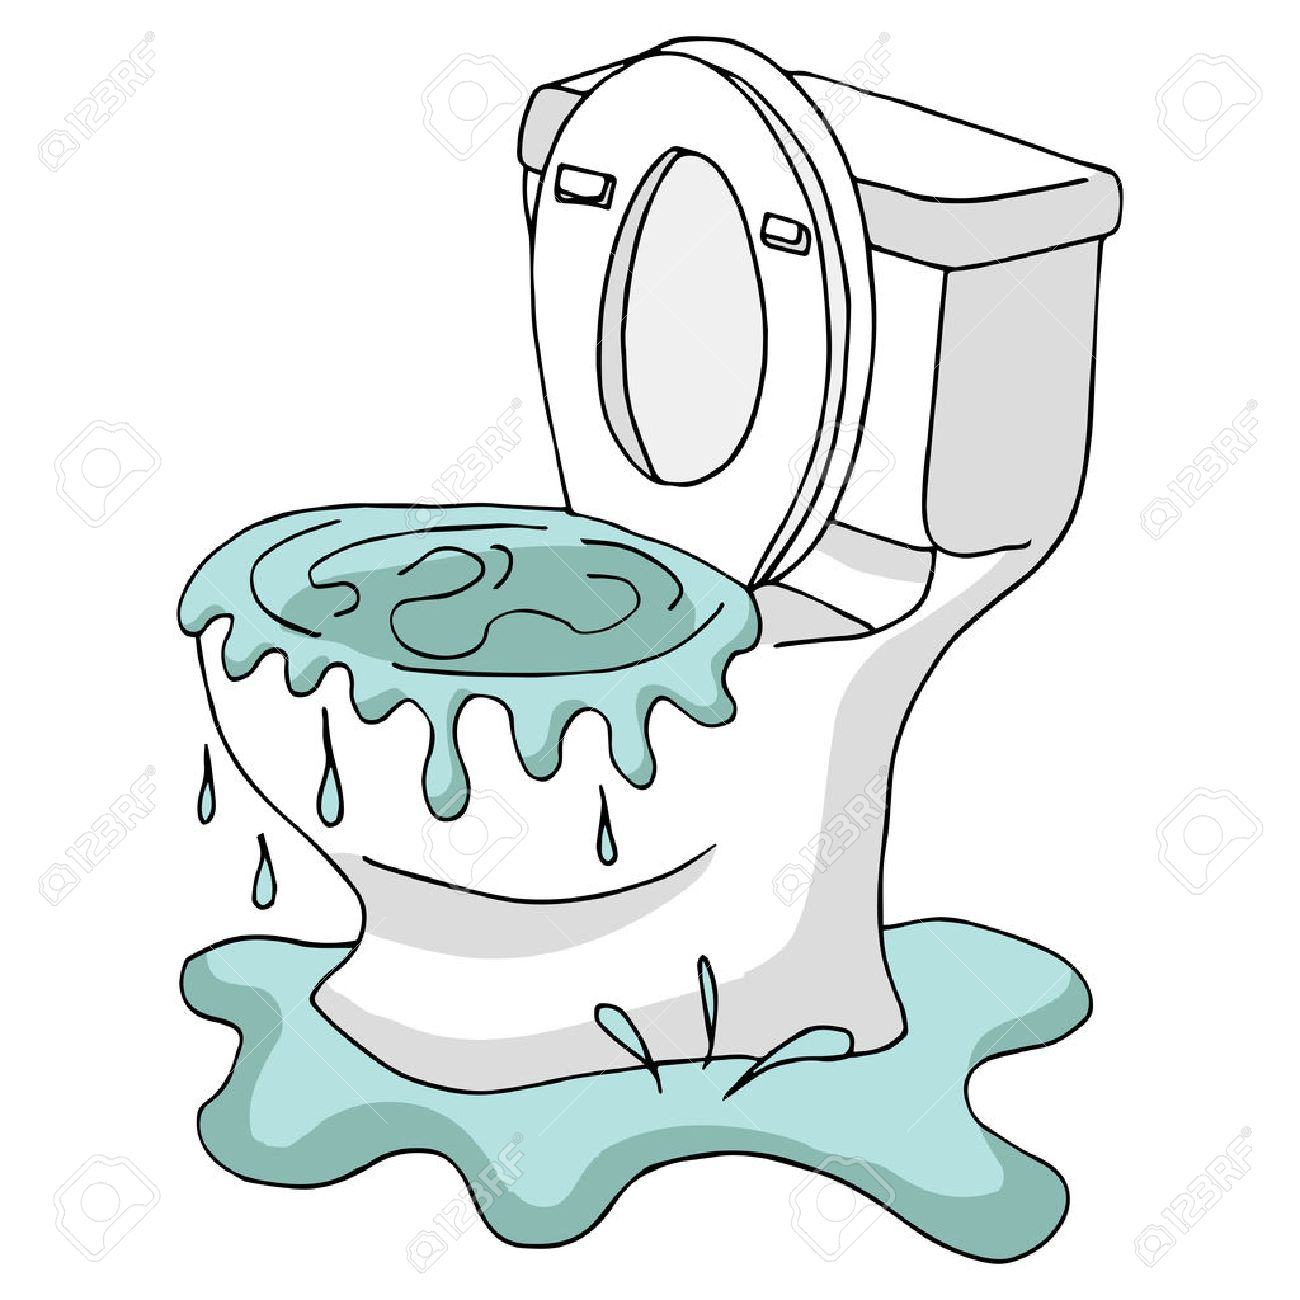 An image of a Clogged Toilet. - 67151224